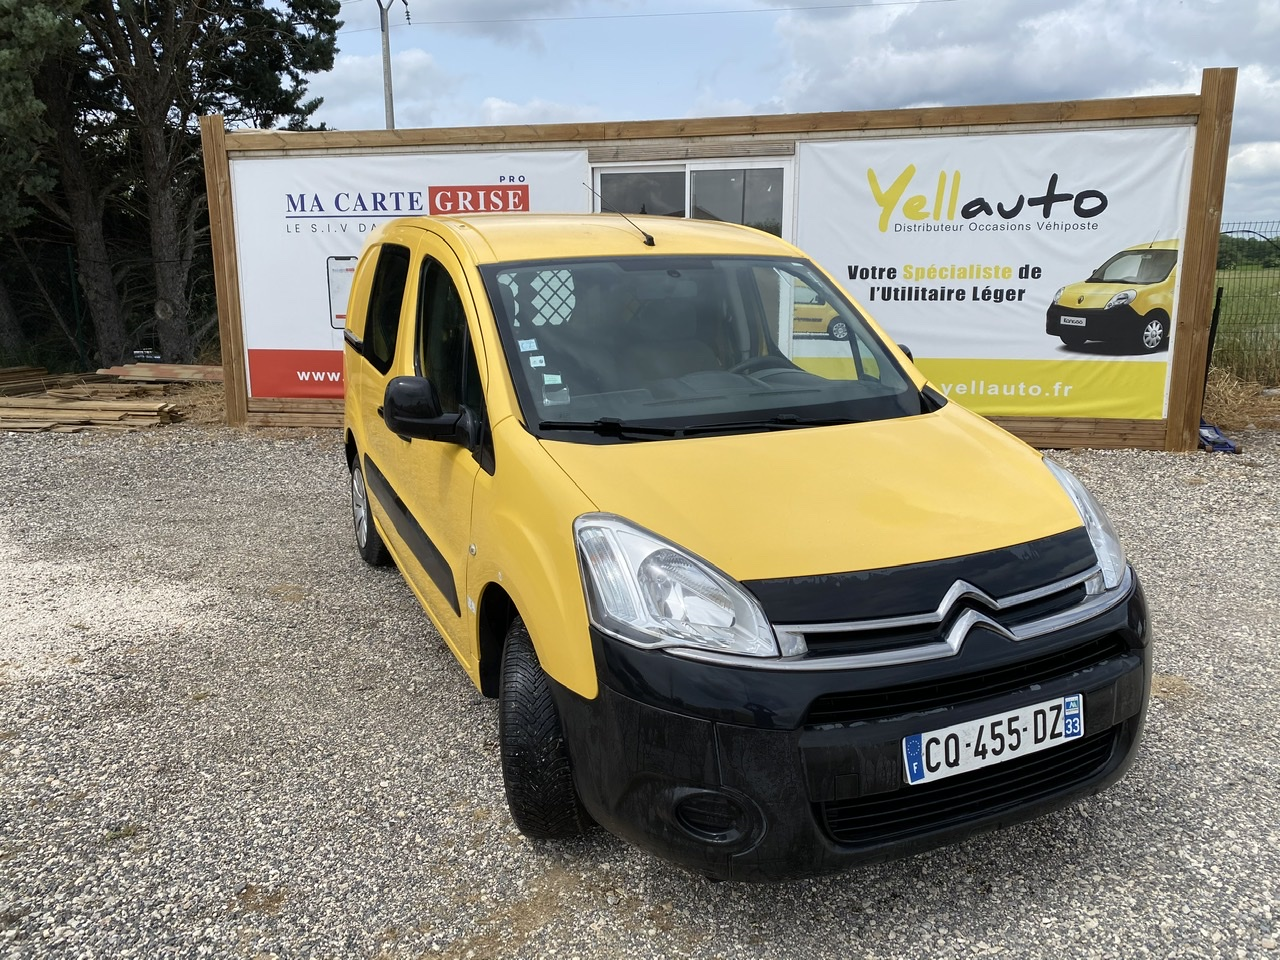 CITROËN BERLINGO 1.6 HDI 75 confort 3 places de 2013 avec 114090 km